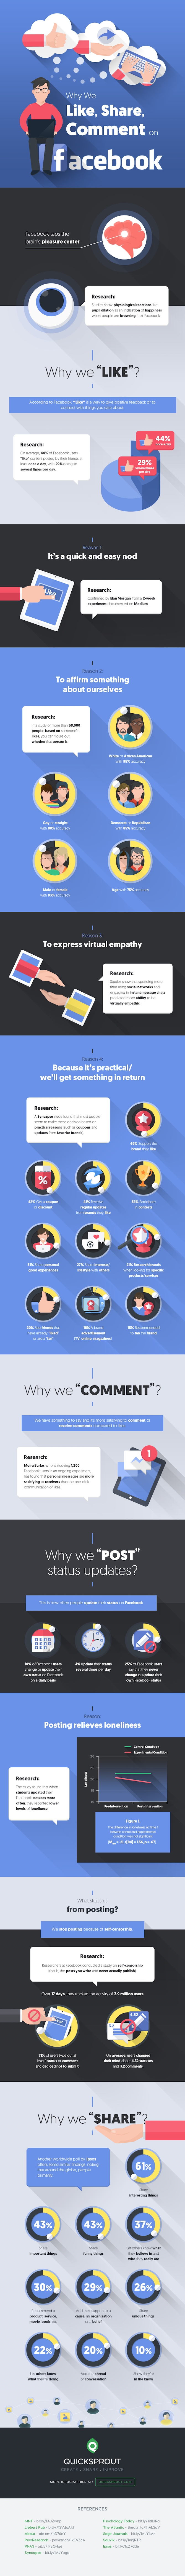 Why-We-Like-Share-Comment-on-Facebook-infographic.jpg